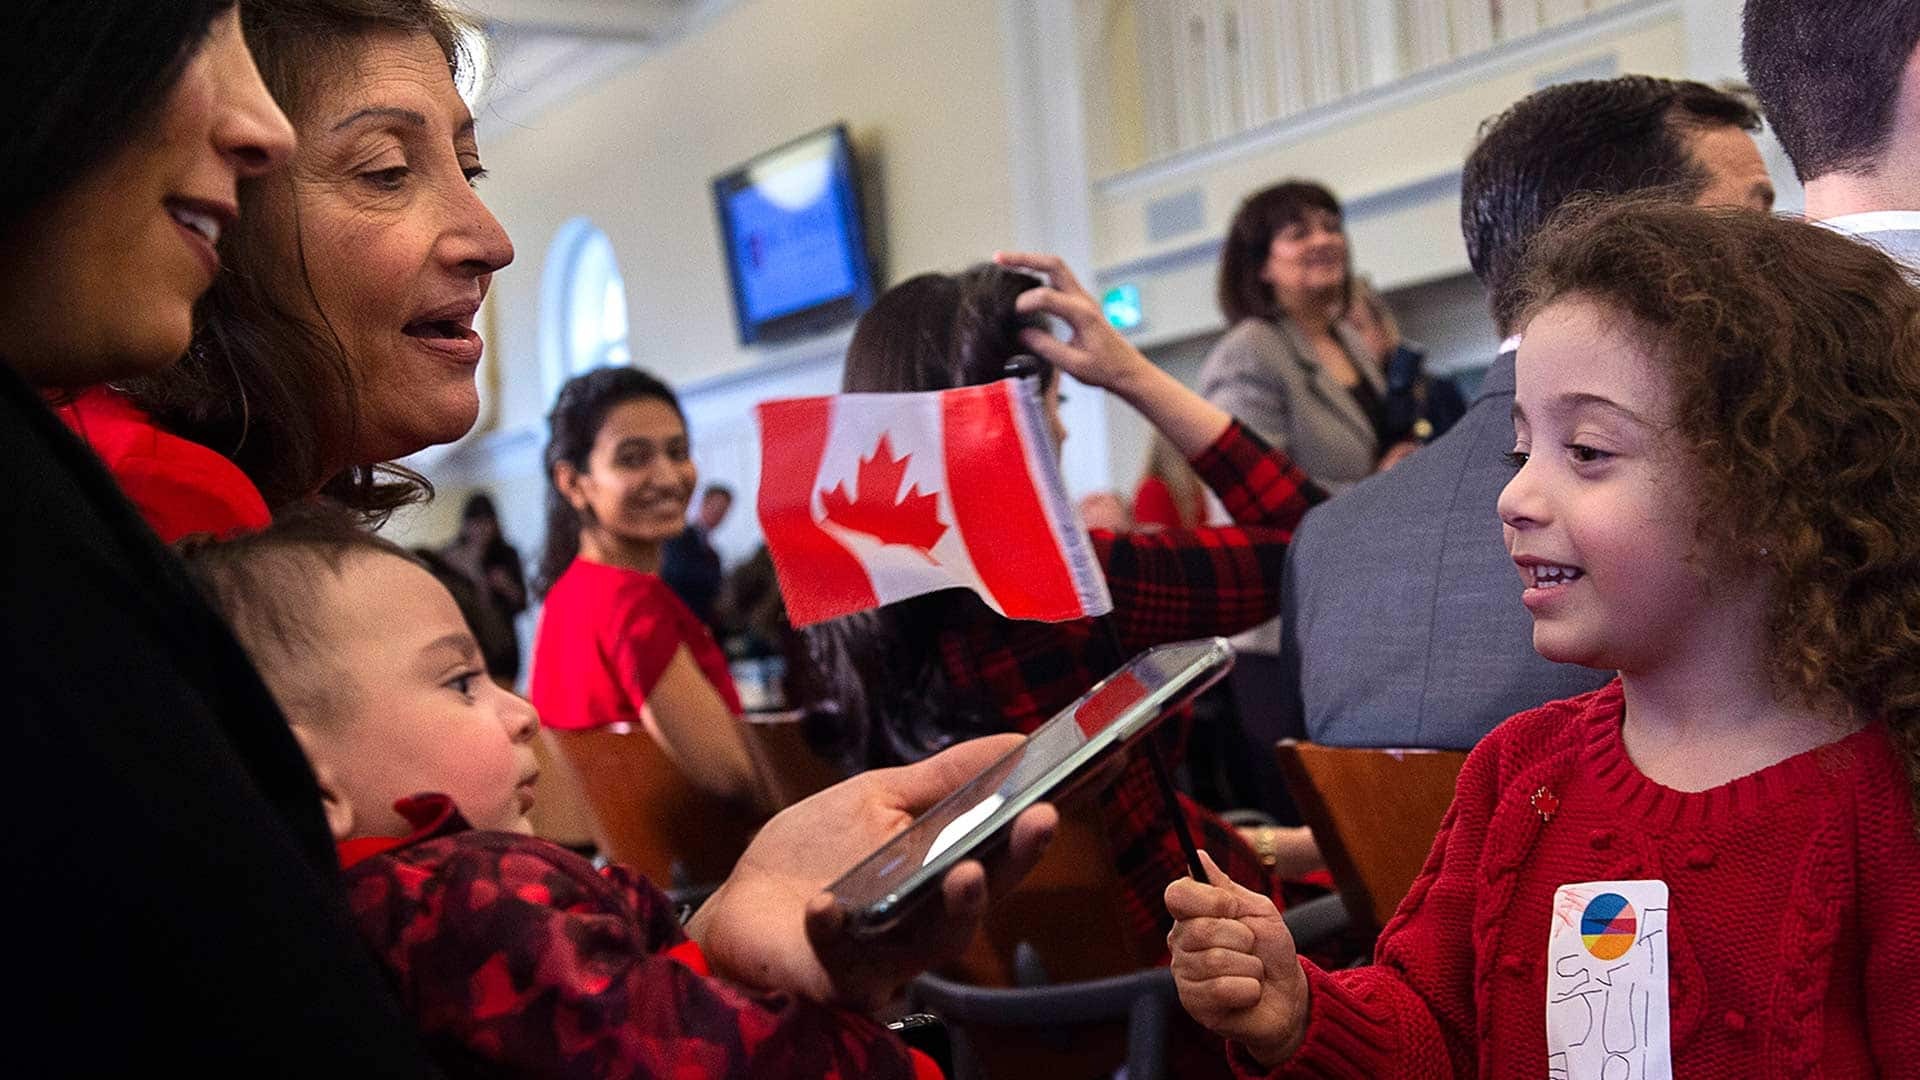 Canada is Welcoming Over One Million Immigrants After Coronavirus